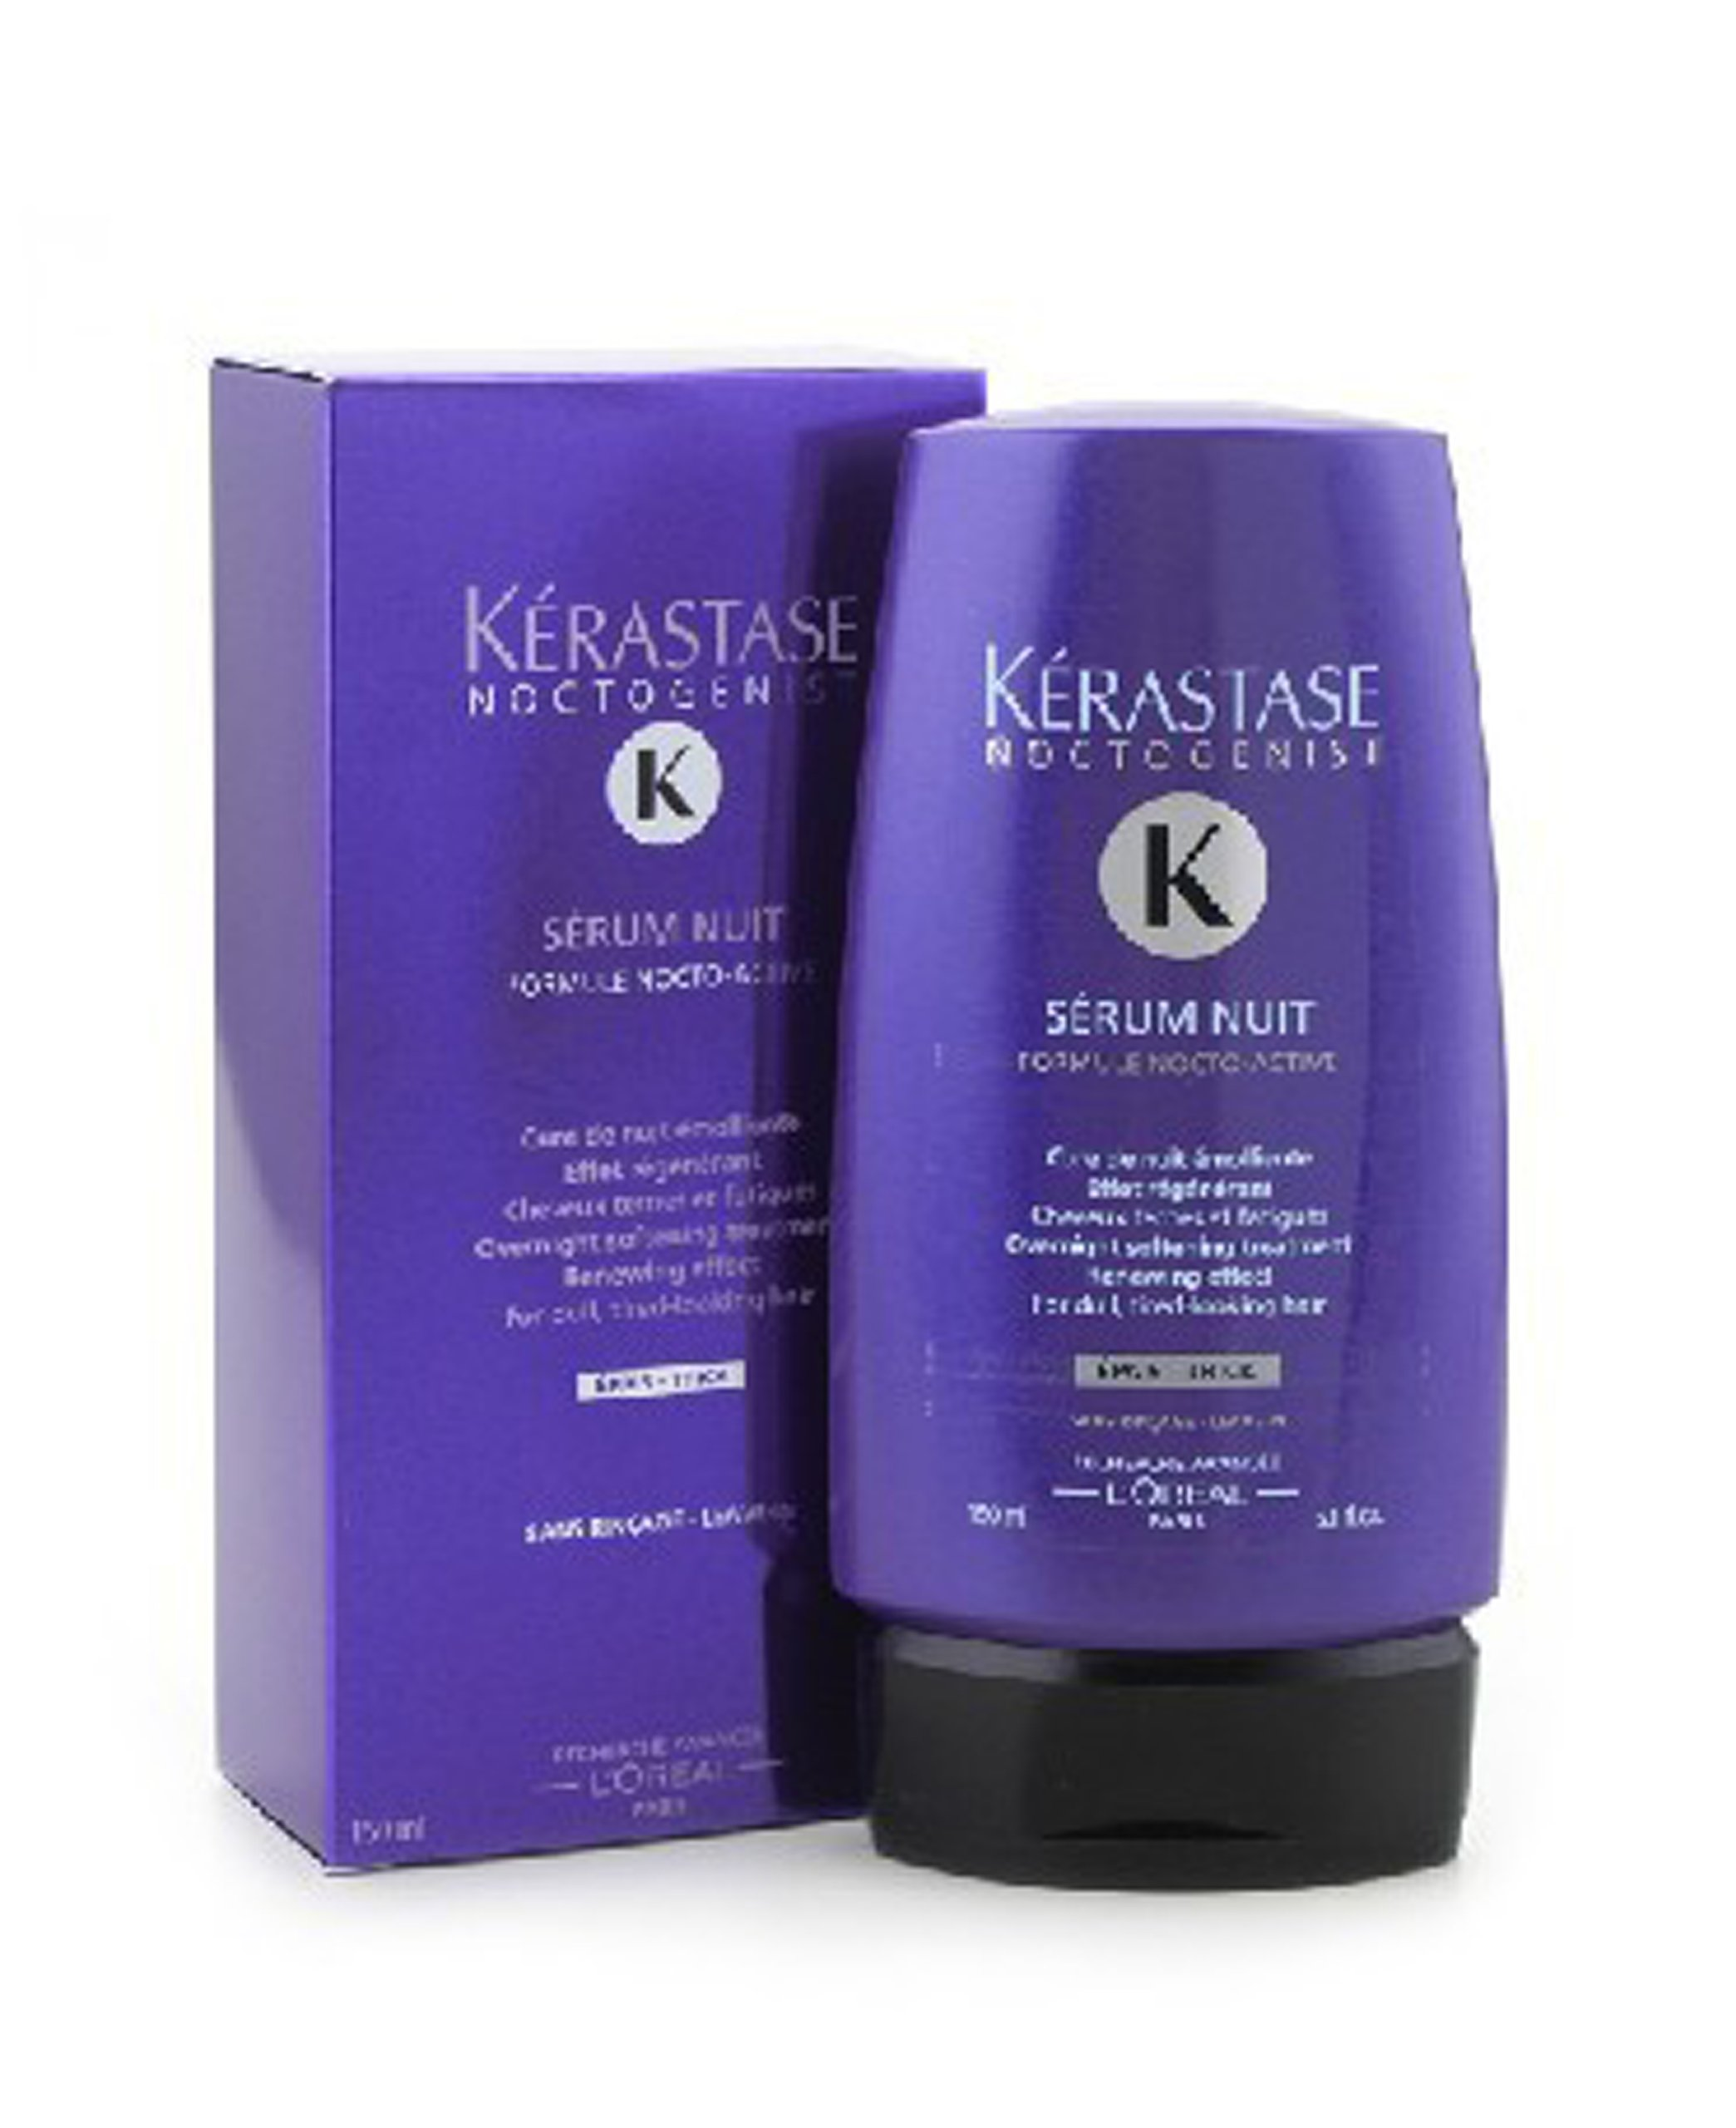 Noctogenist Serum Nuit Overnight Softening Leave-In Treatment ( For Dull, Tired-Looking Hair ) - Kerastase - Noctogenist - 150ml/5.1oz